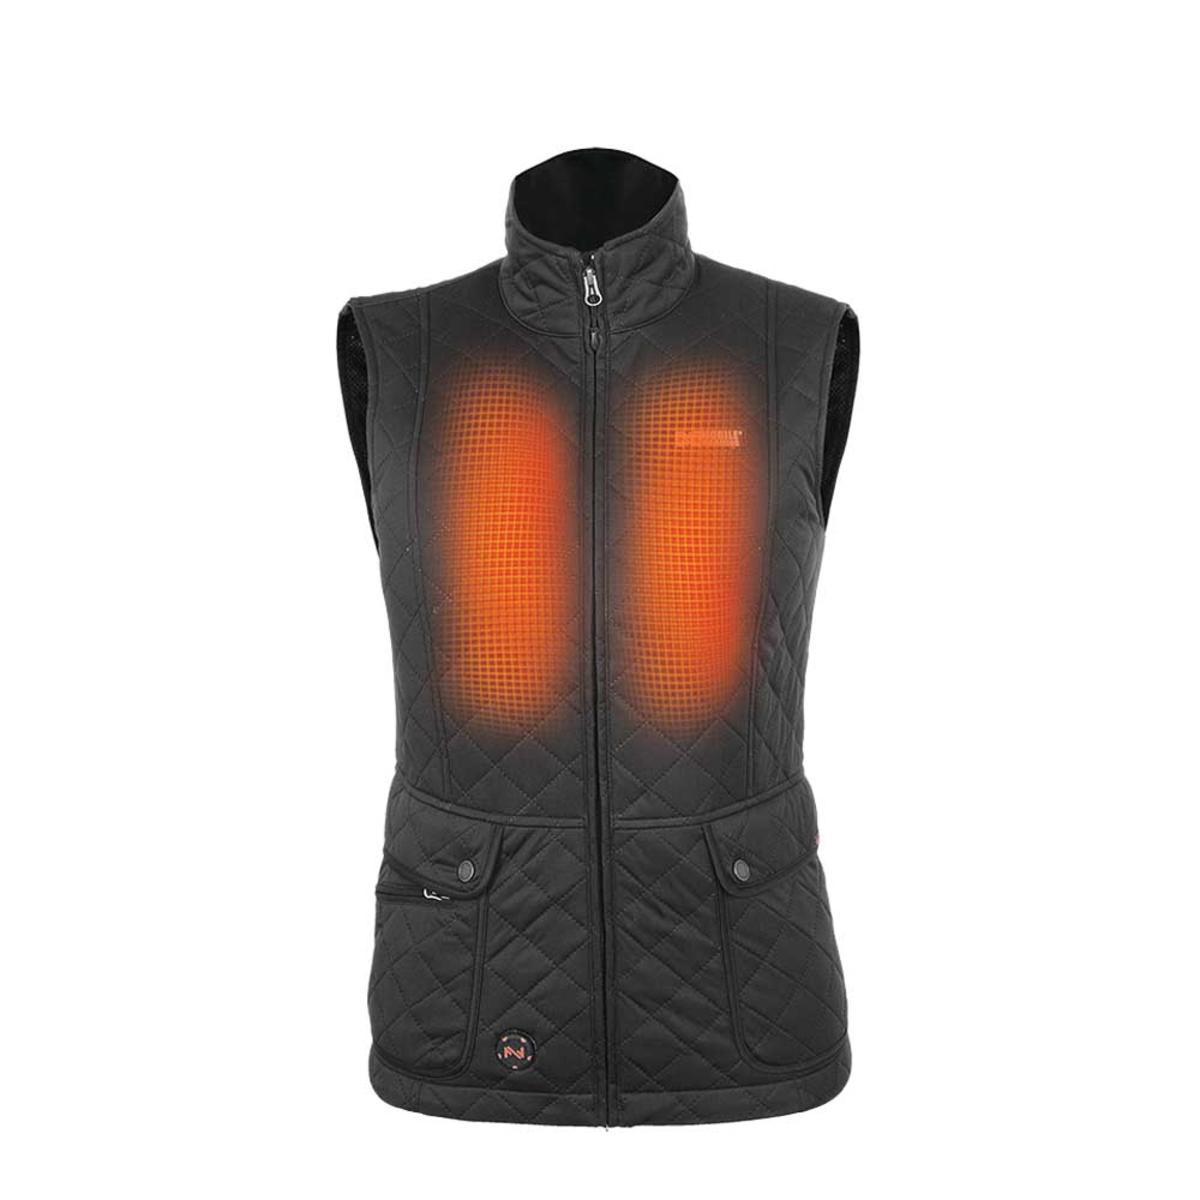 Womens Heated Clothing >> Mobile Warming 7 4v Womens Cascade Heated Vest